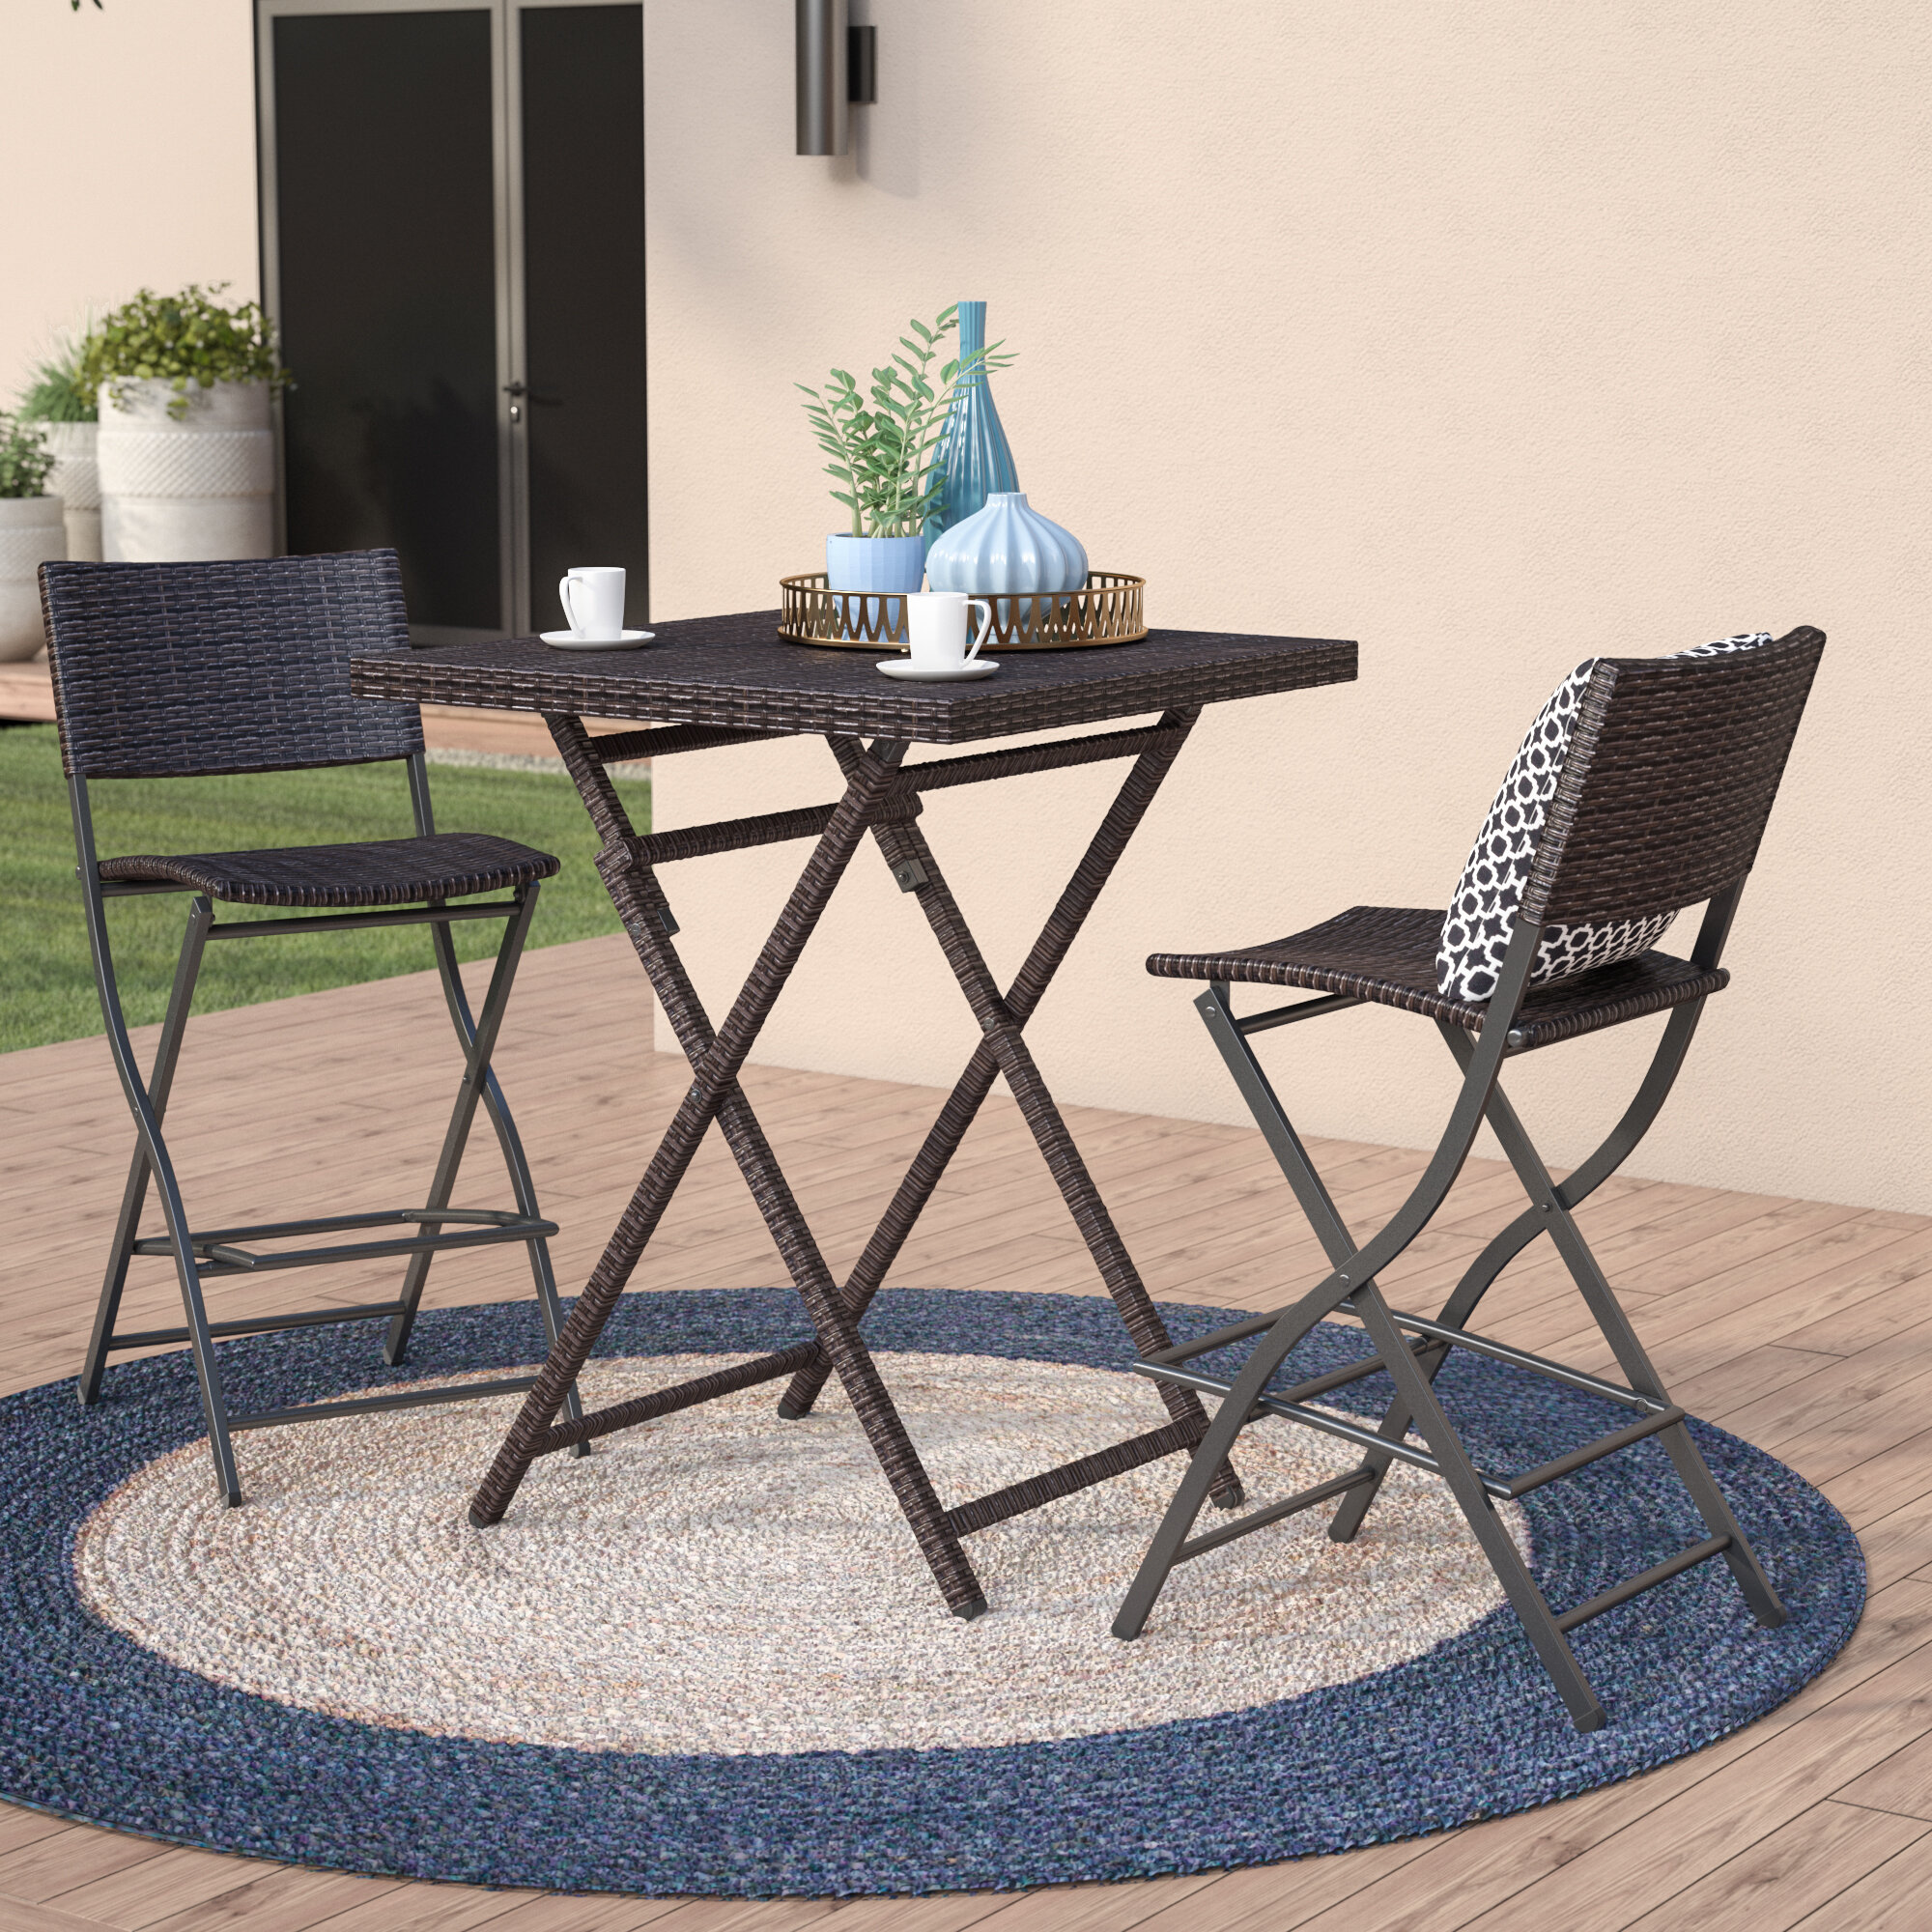 BETTY Tables Outdoor Folding Table and Chair Set Wild Portable Barbecue 3-7 Piece Set Household Aluminum Table and Chair Combination Color : A - 1 Cloth Table+4 Chairs